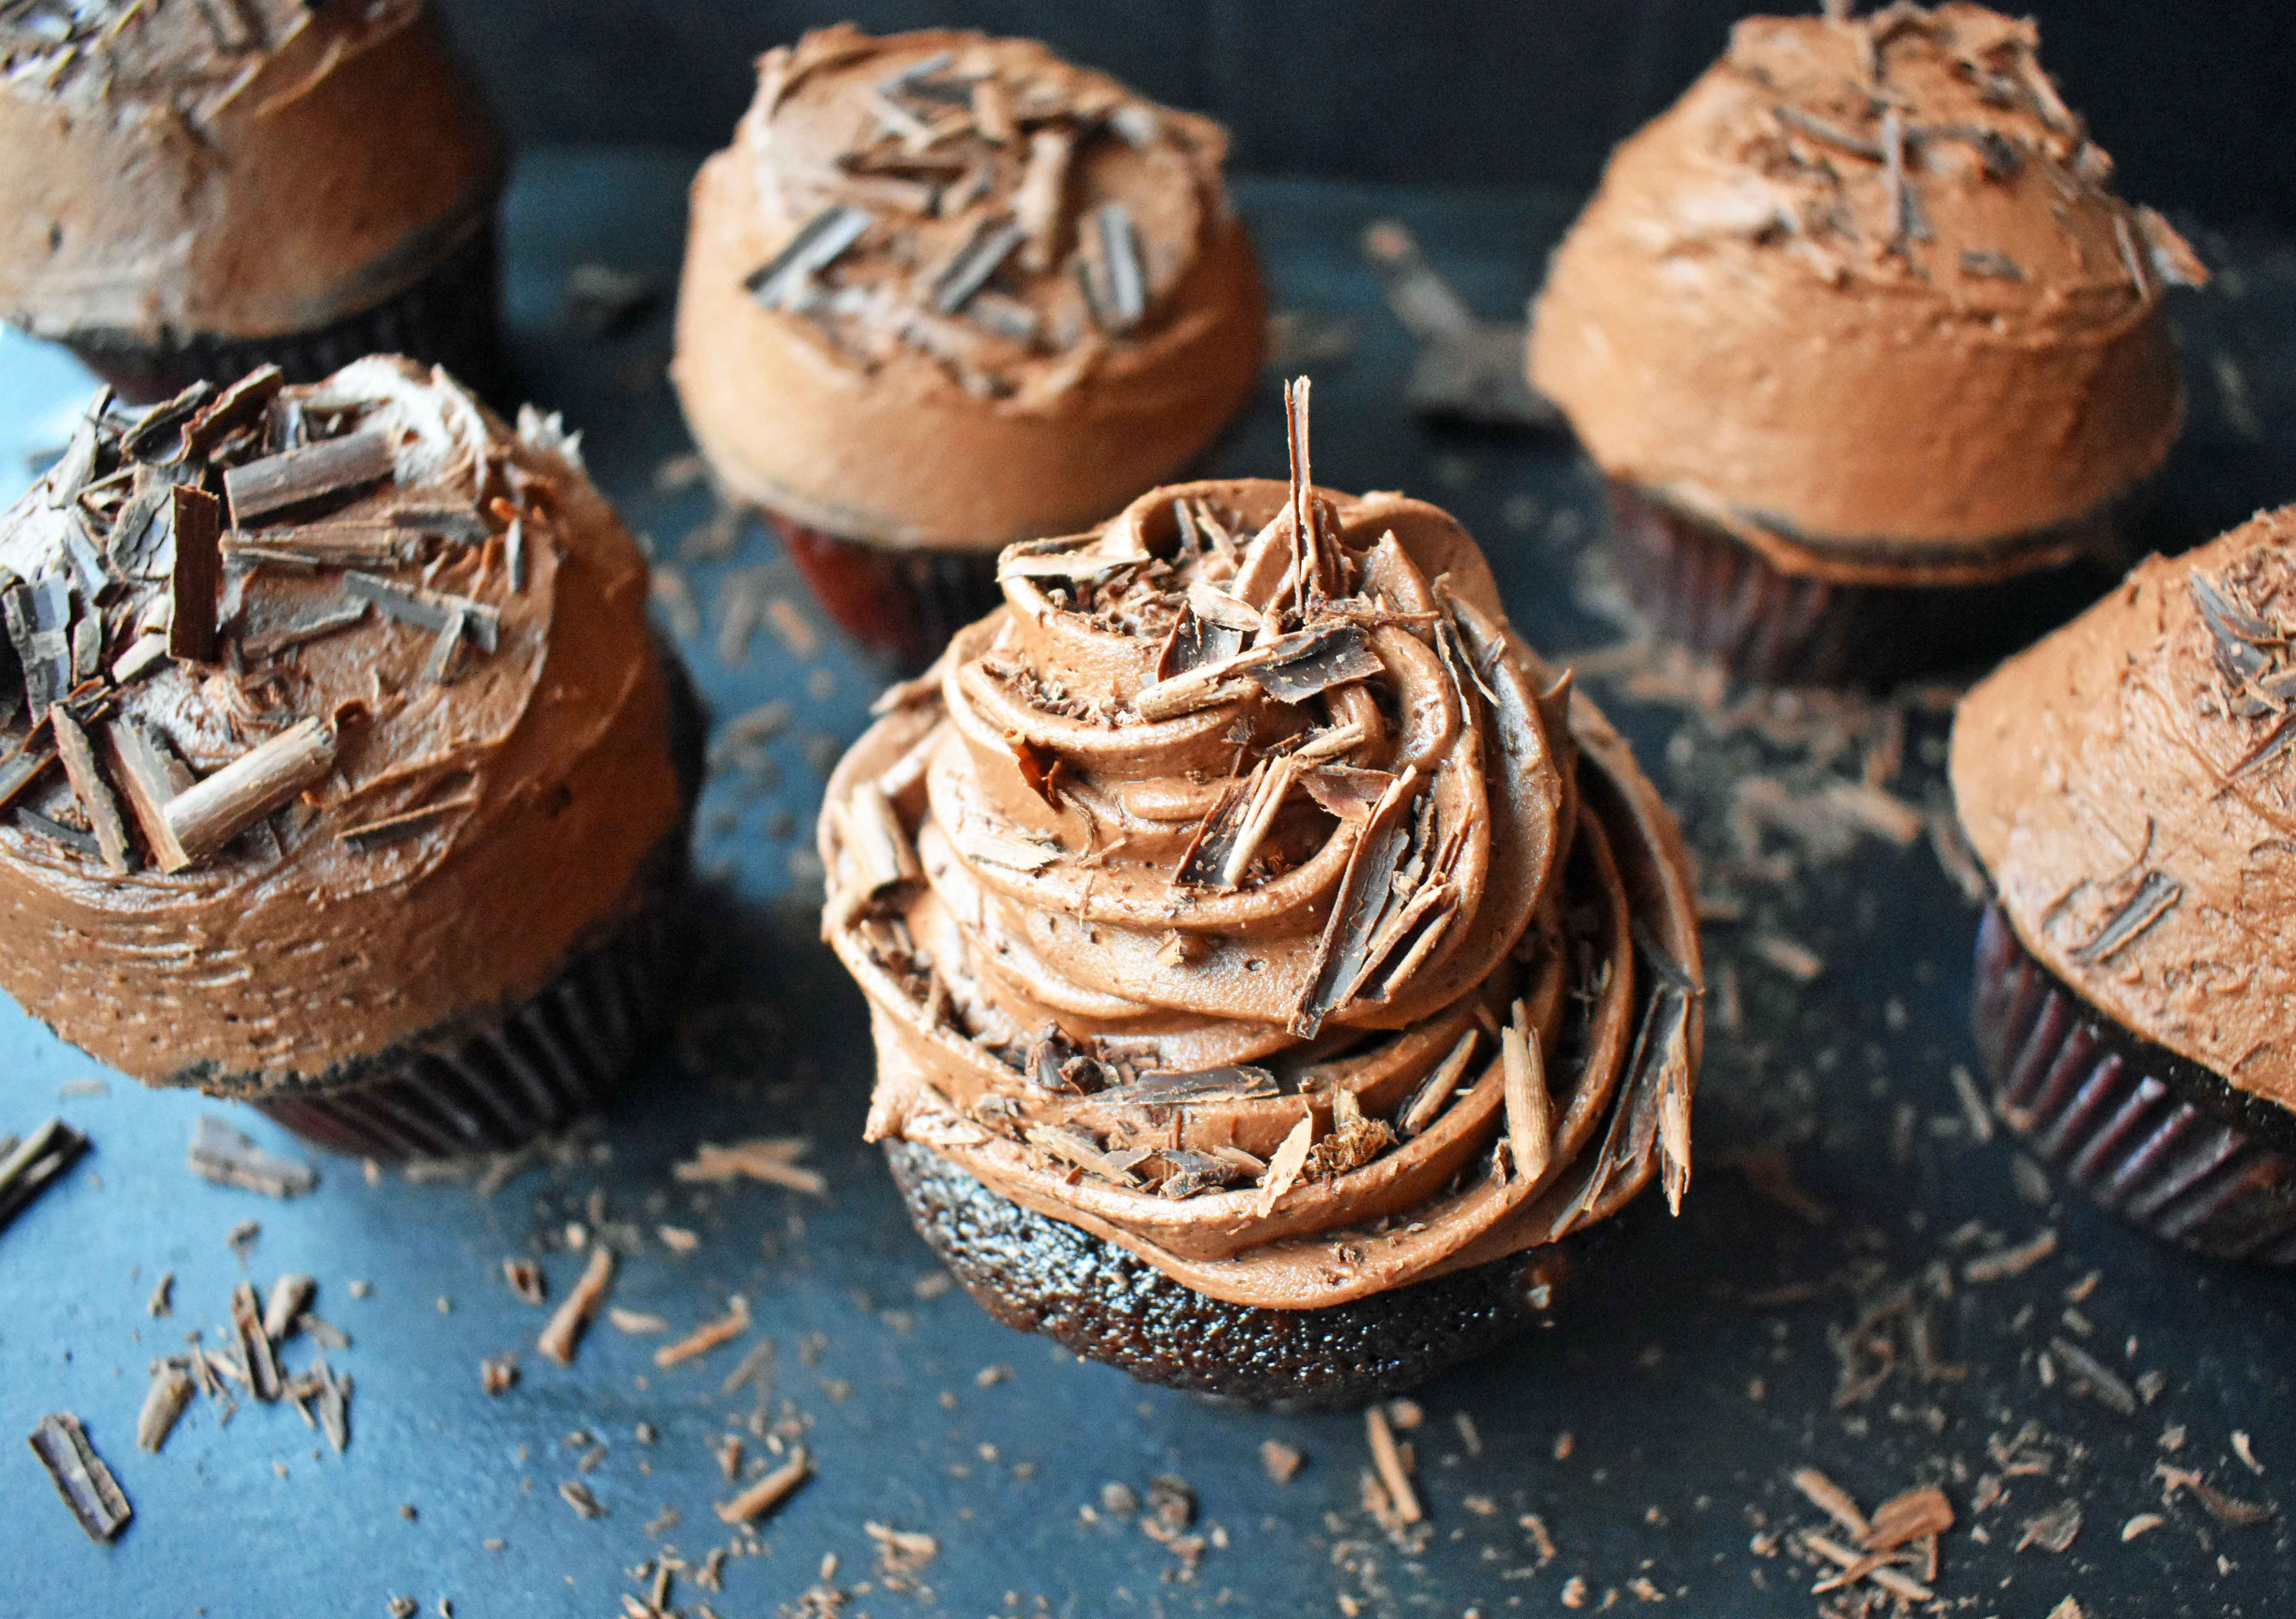 Chocolate Bombshell Birthday Cupcakes. Rich, tender, and fluffy chocolate cake topped with homemade perfect chocolate buttercream frosting. A match made in heaven! These are the ultimate chocolate cupcake. www.modernhoney.com